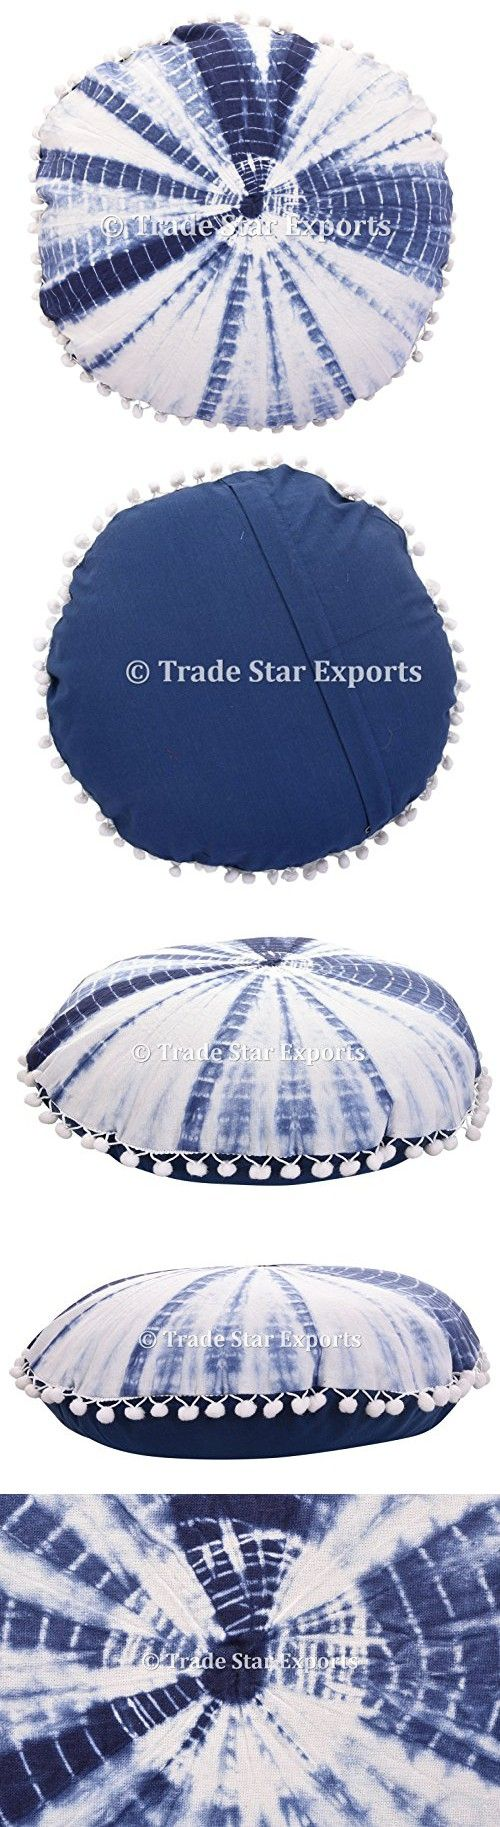 "16"" Shibori Cushion Cover, Round Pillow case, Indigo Tie Dye Pillows, Outdoor Ottoman Poufs, Boho Pillow Shams, Indian Cotton Pillowcase, Room Decor Pillows"